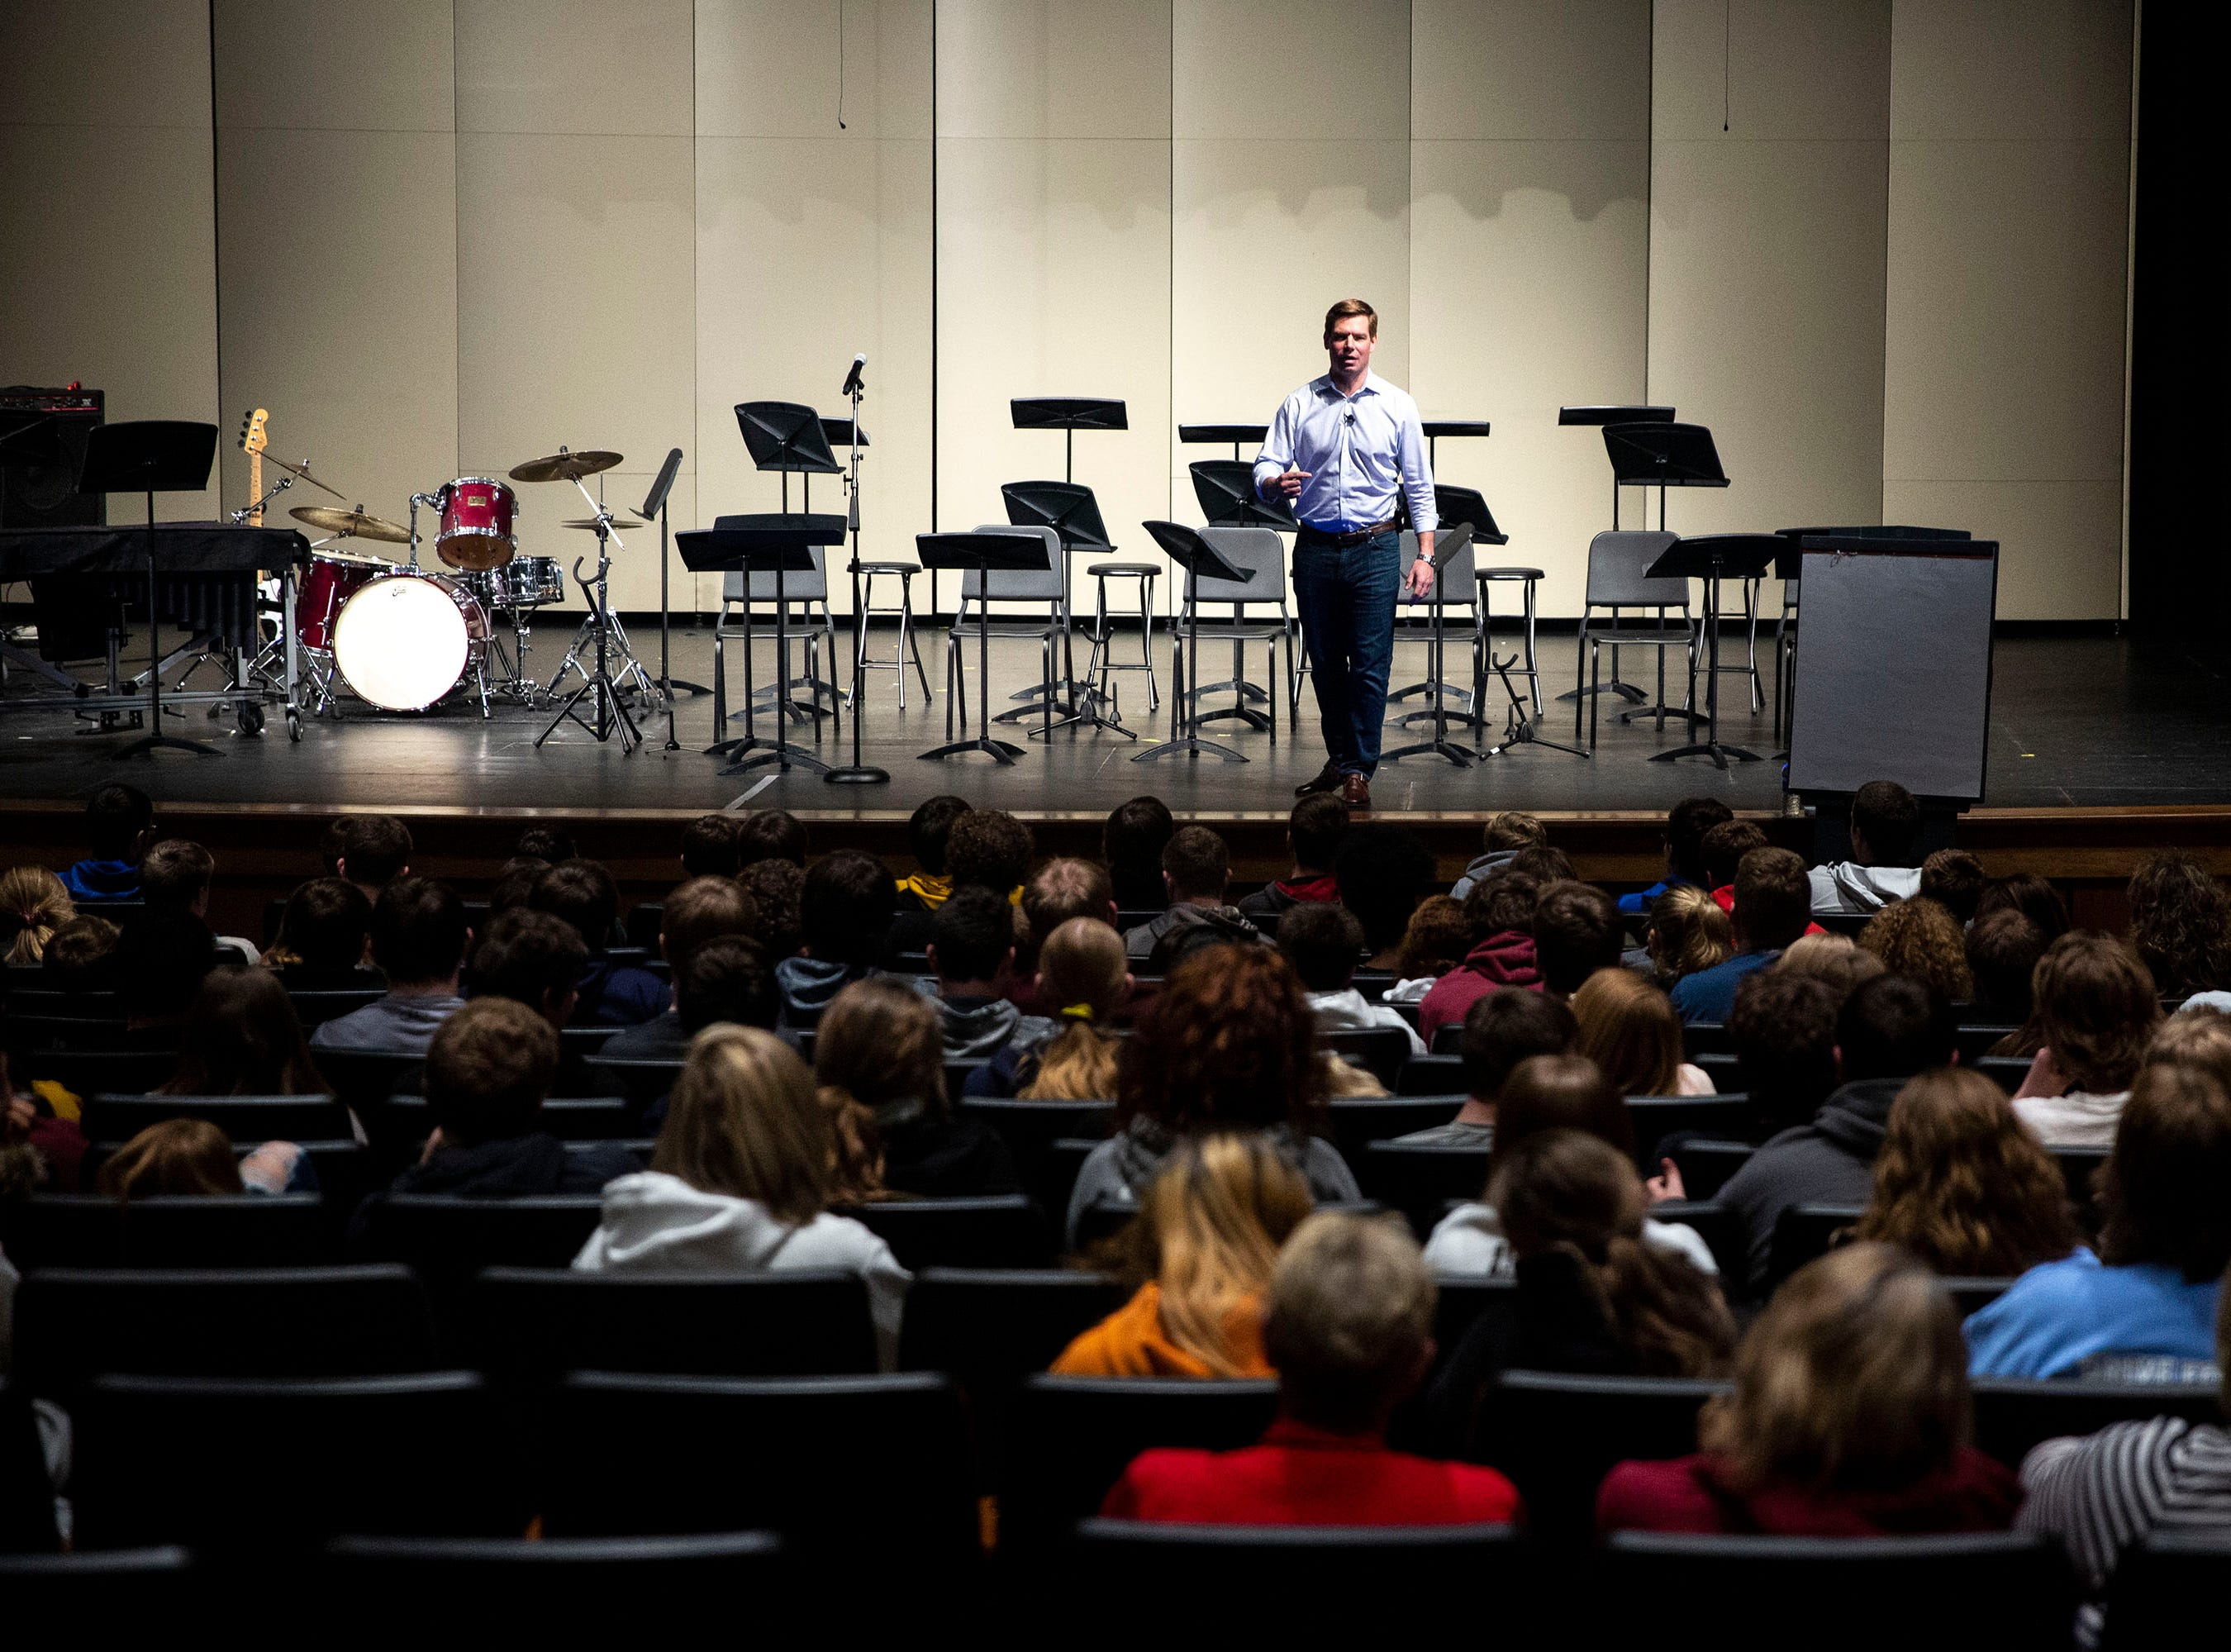 U.S. Rep. Eric Swalwell, D-CA, talks to studnets at Algona High School on Monday, April 1, 2019, in the school's auditorium in Algona. Swalwell was born in Iowa and has made several trips to the state while eyeing a run for president.